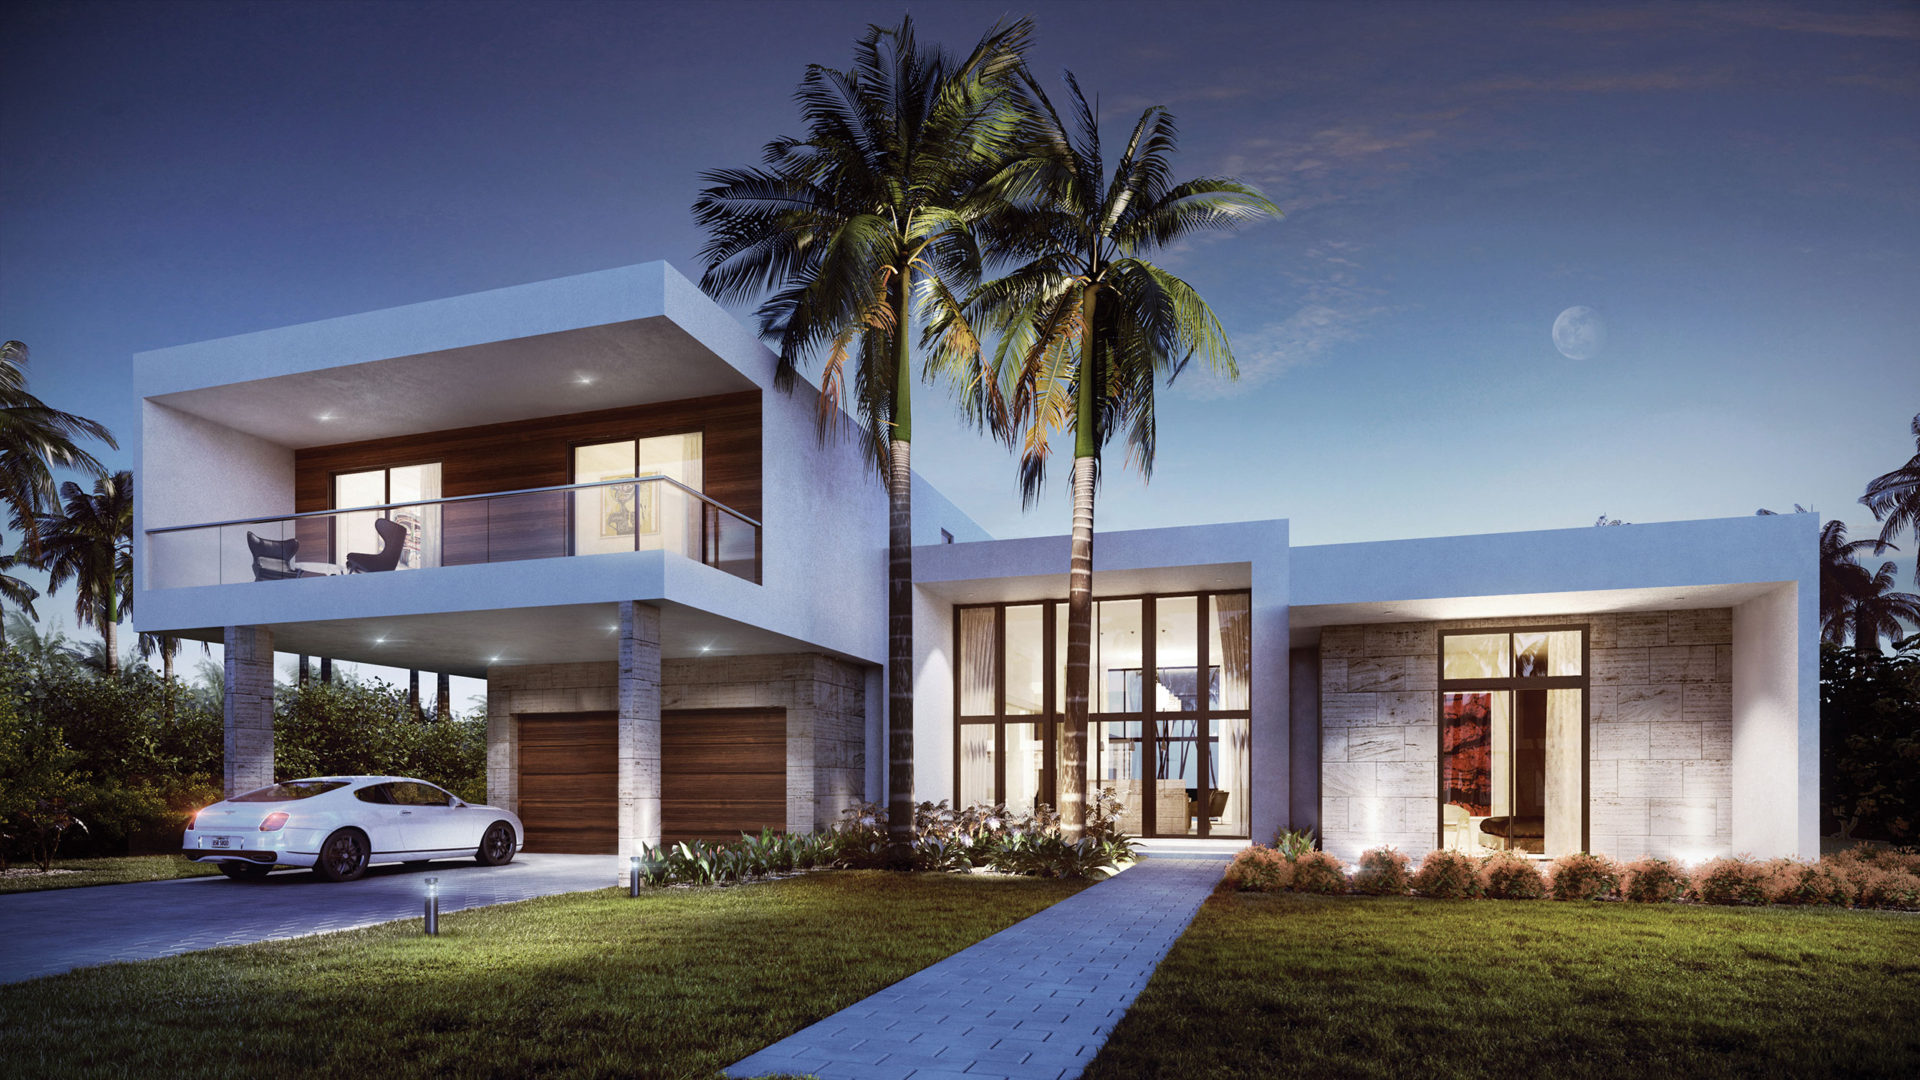 botaniko weston boca raton real estate